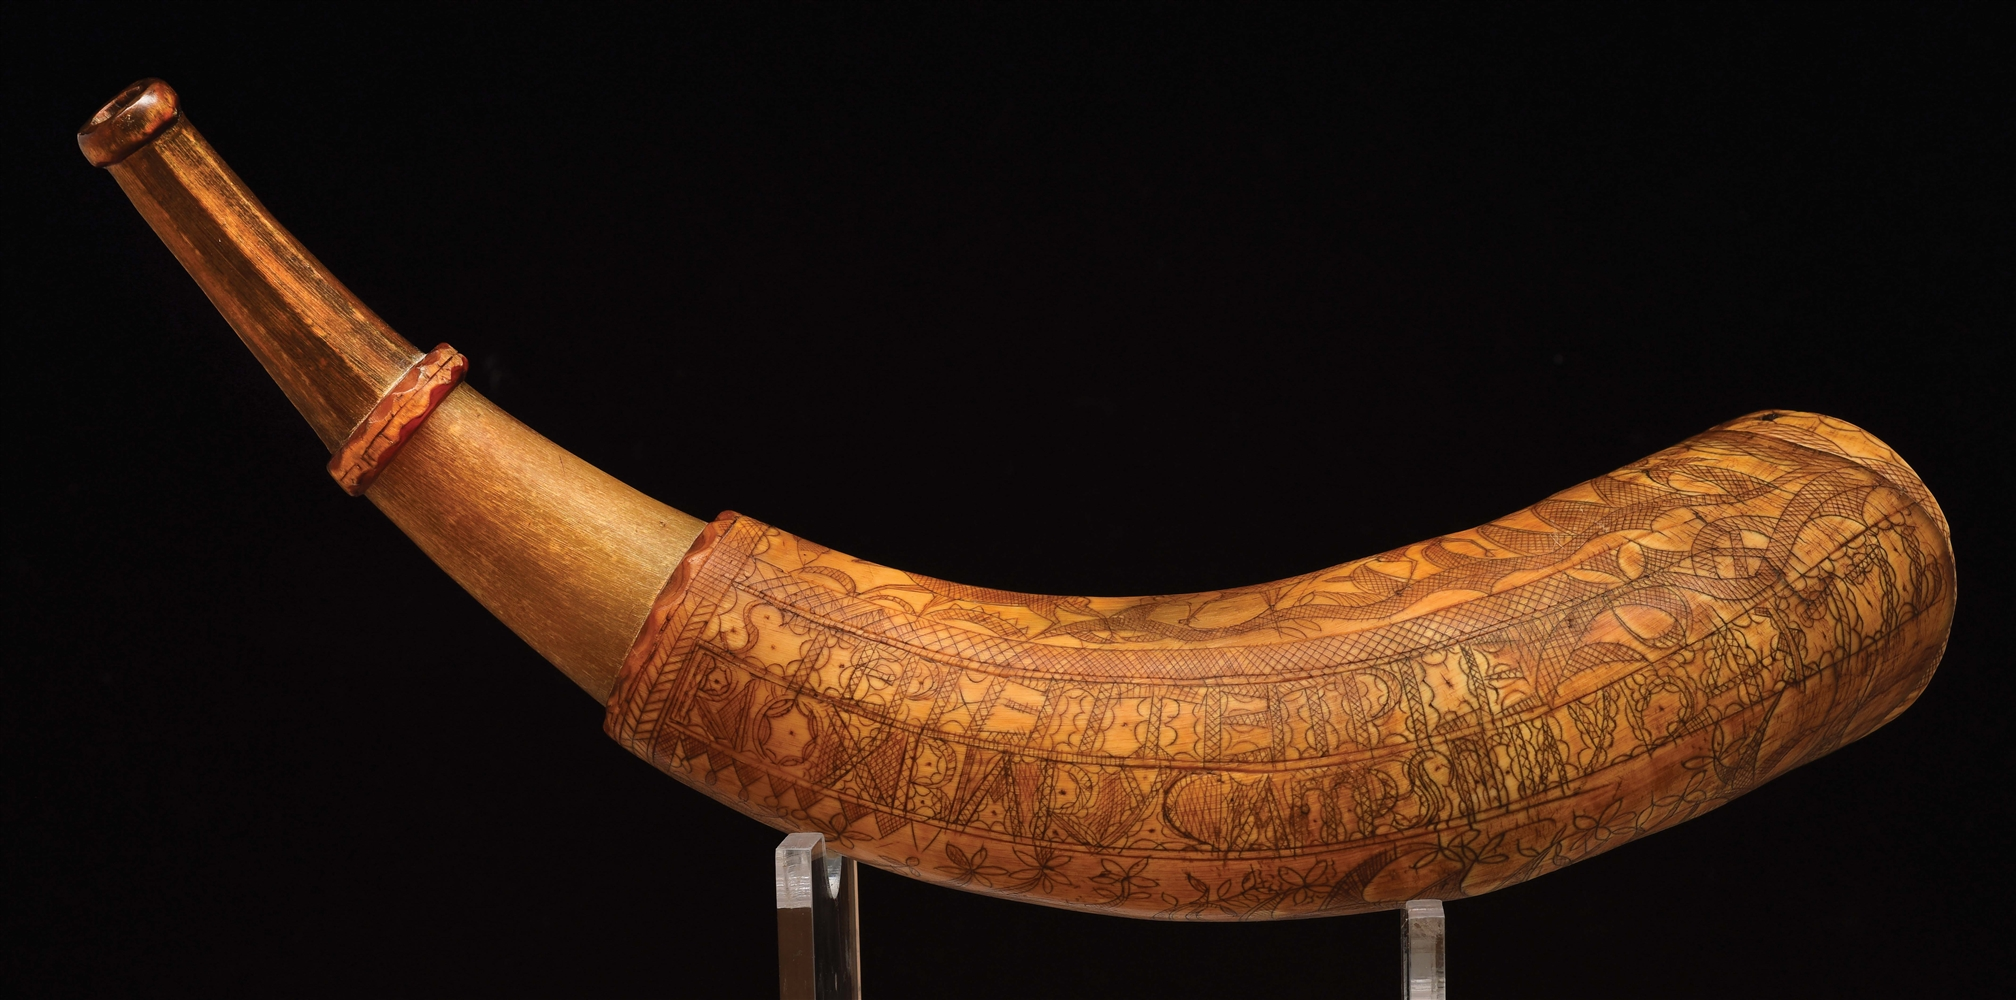 ENGRAVED FOLK ART POWDER HORN OF STEPHEN TEMPLE, DATED 1776.